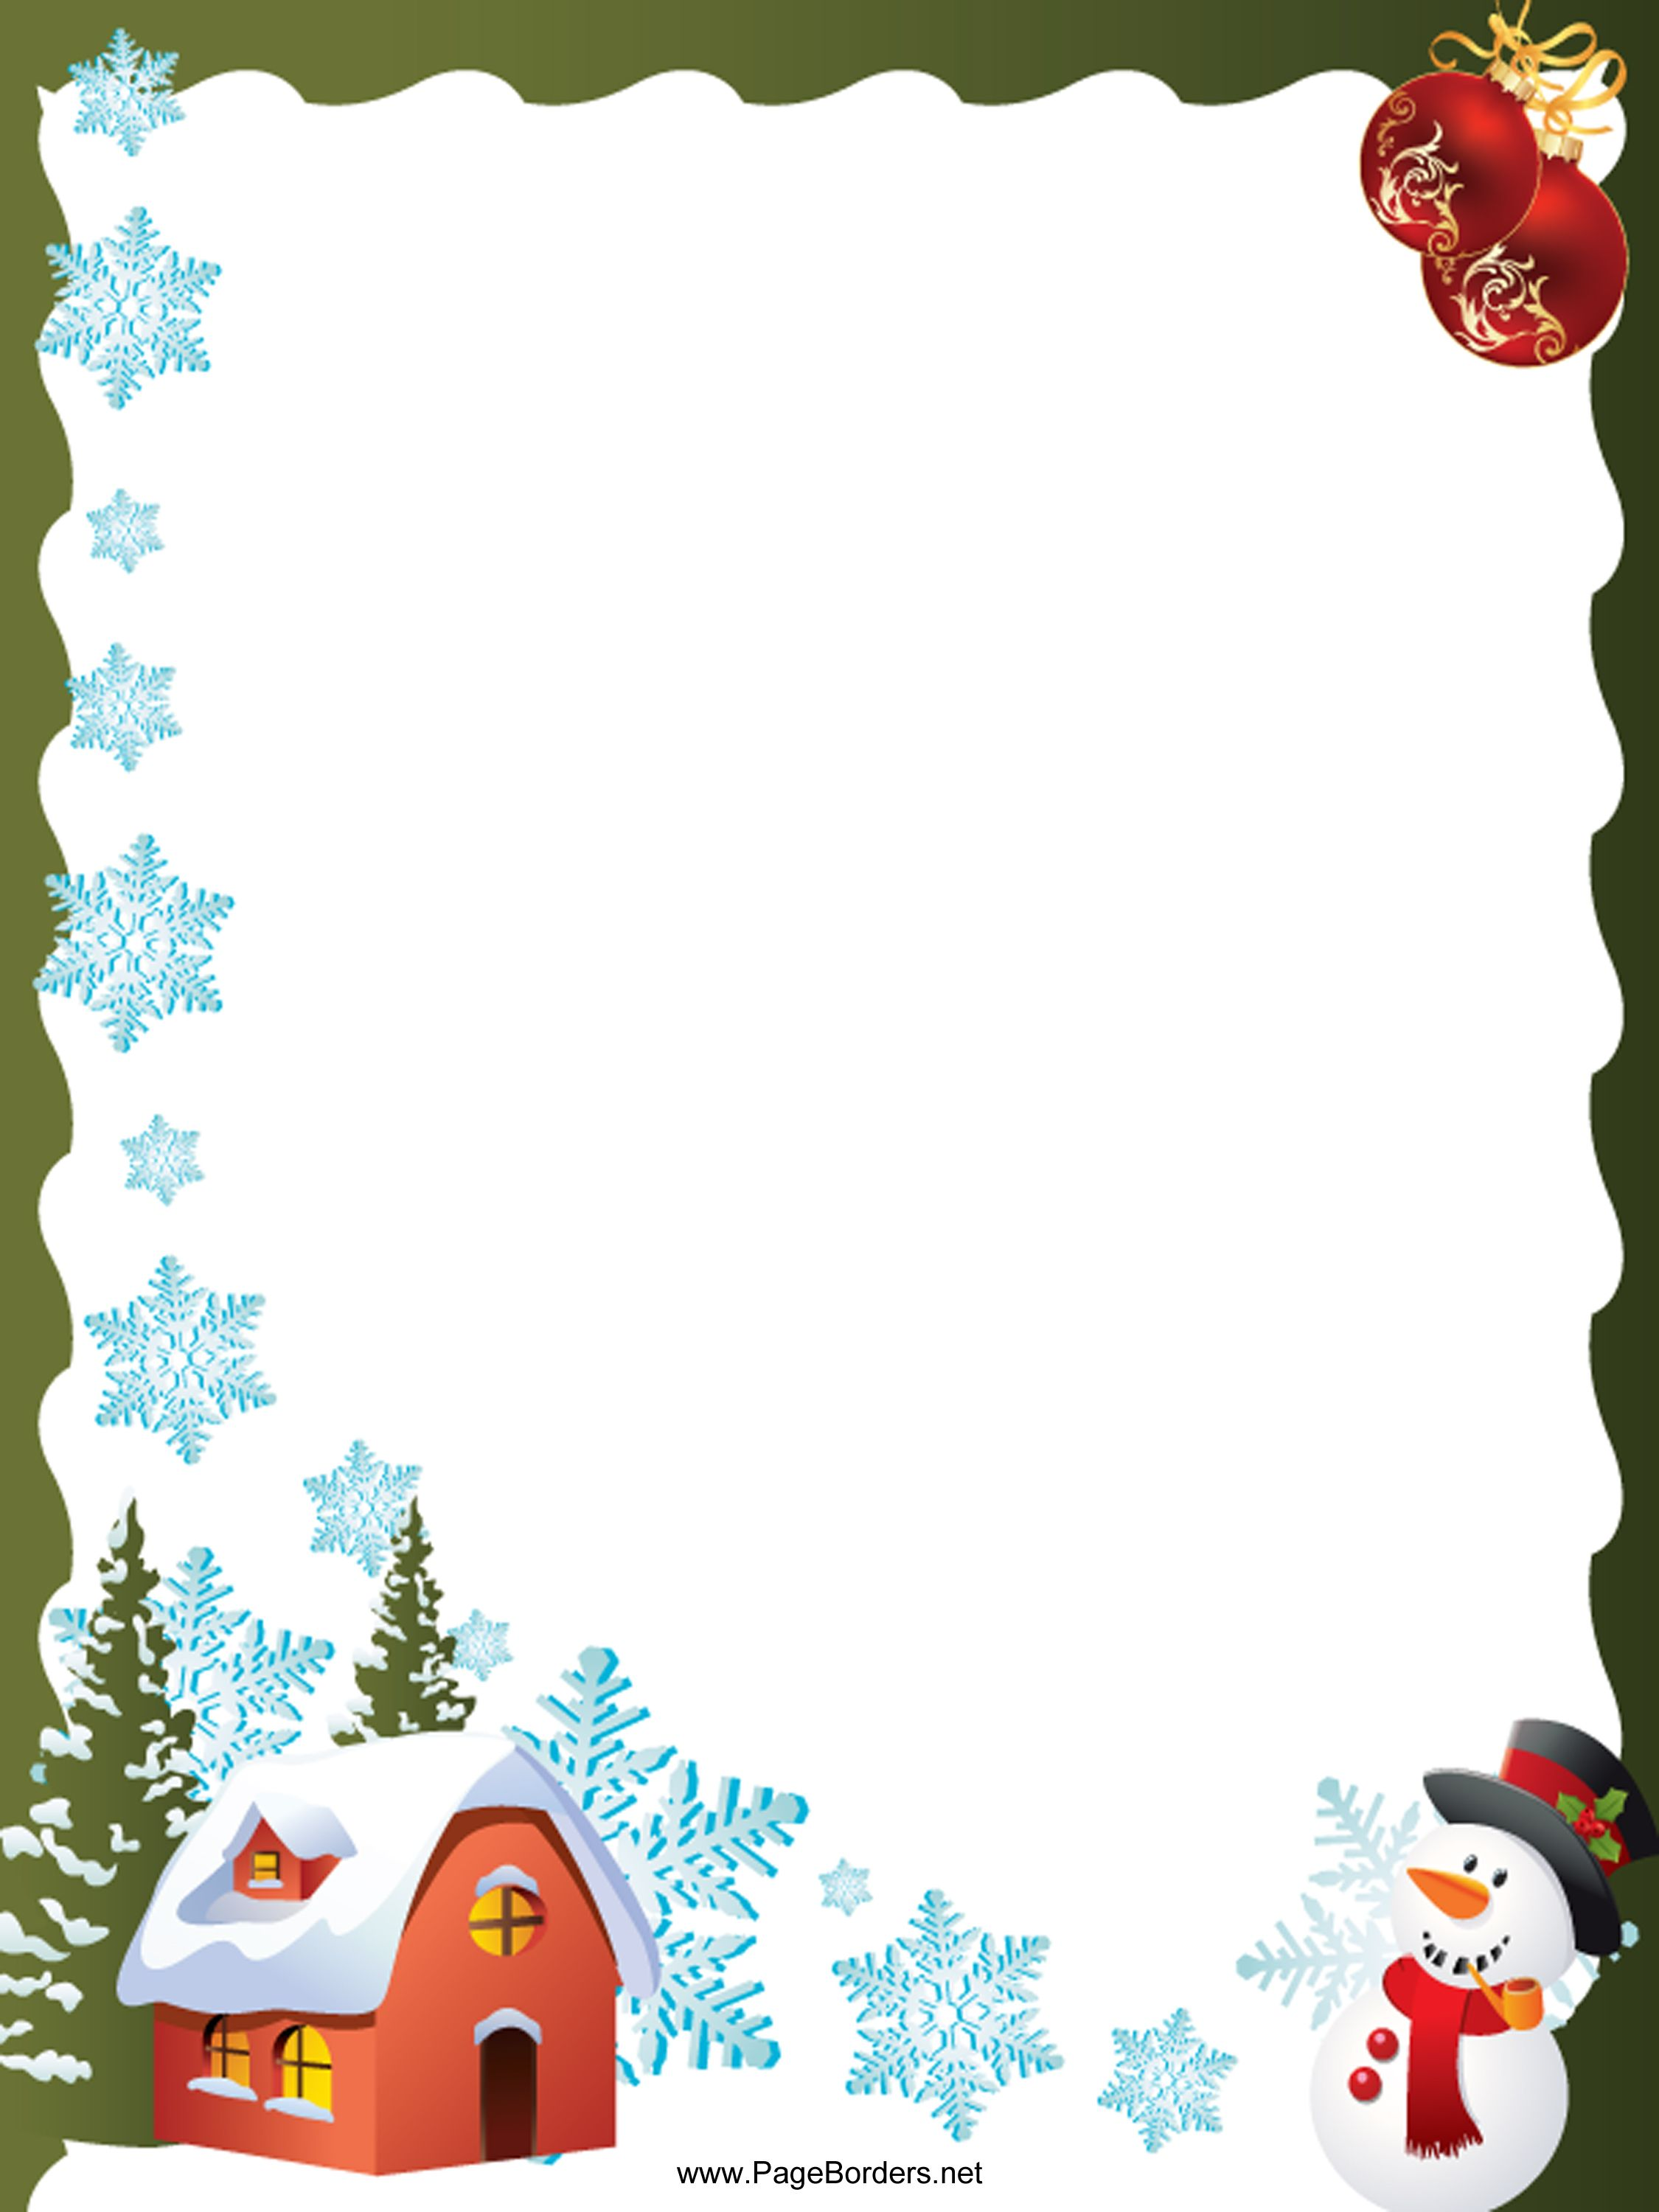 And Snowman Christmas Border This Free Festive Printable Christmas .  Christmas Borders For Word.House_Snowflakes_and_Snowman_Christmas_Border.  Page Border Templates For Microsoft Word